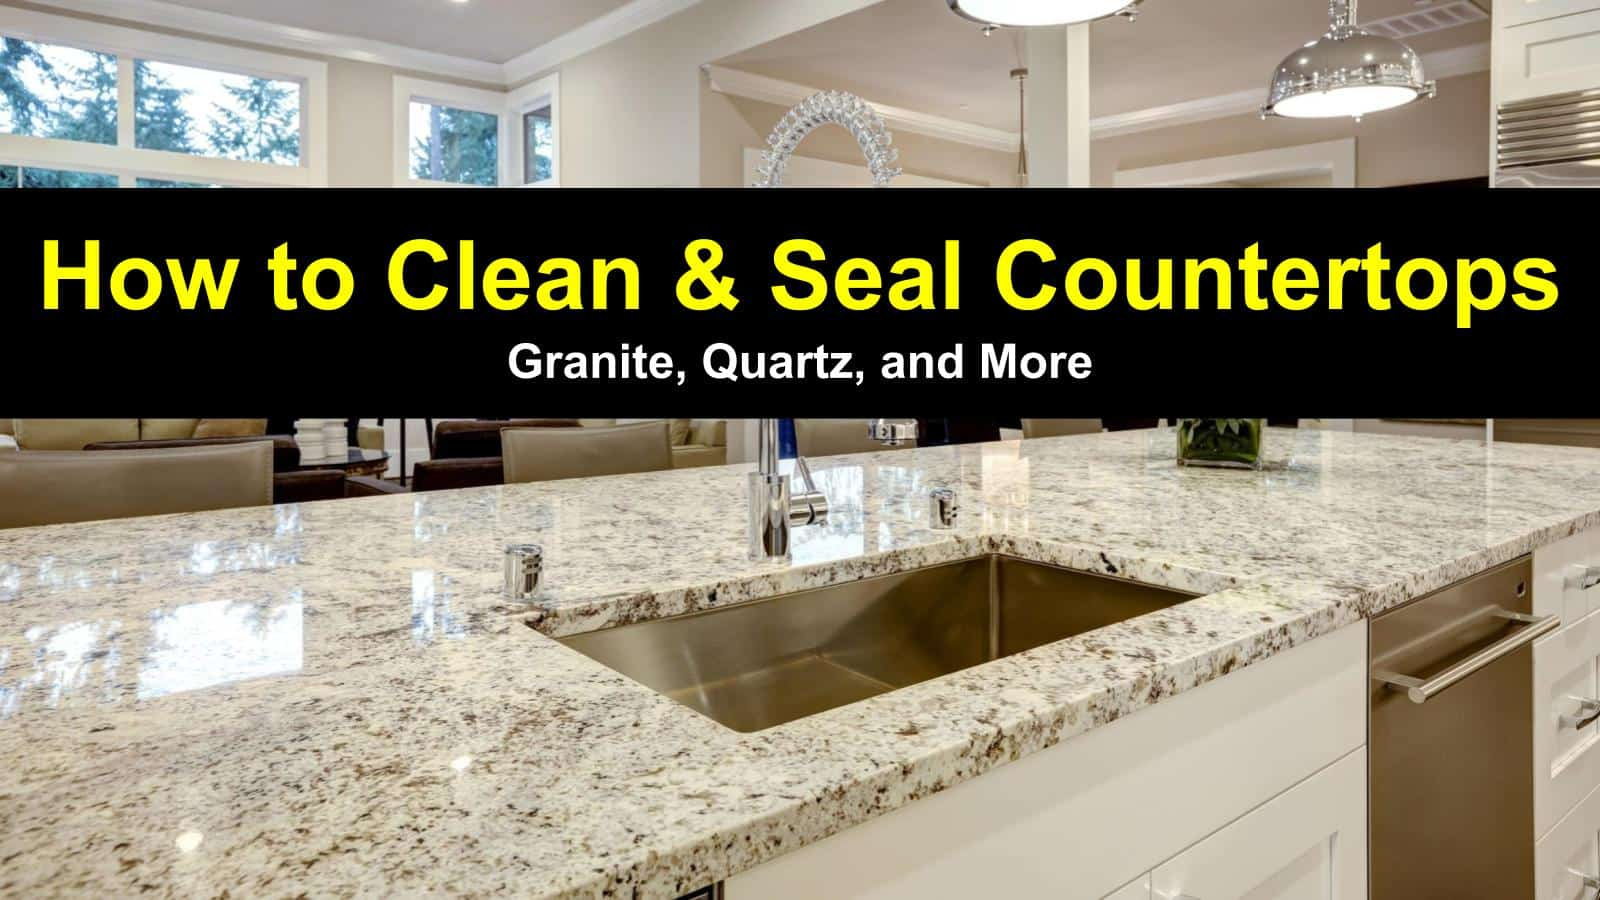 How To Clean And Seal Countertops Granite Quartz More